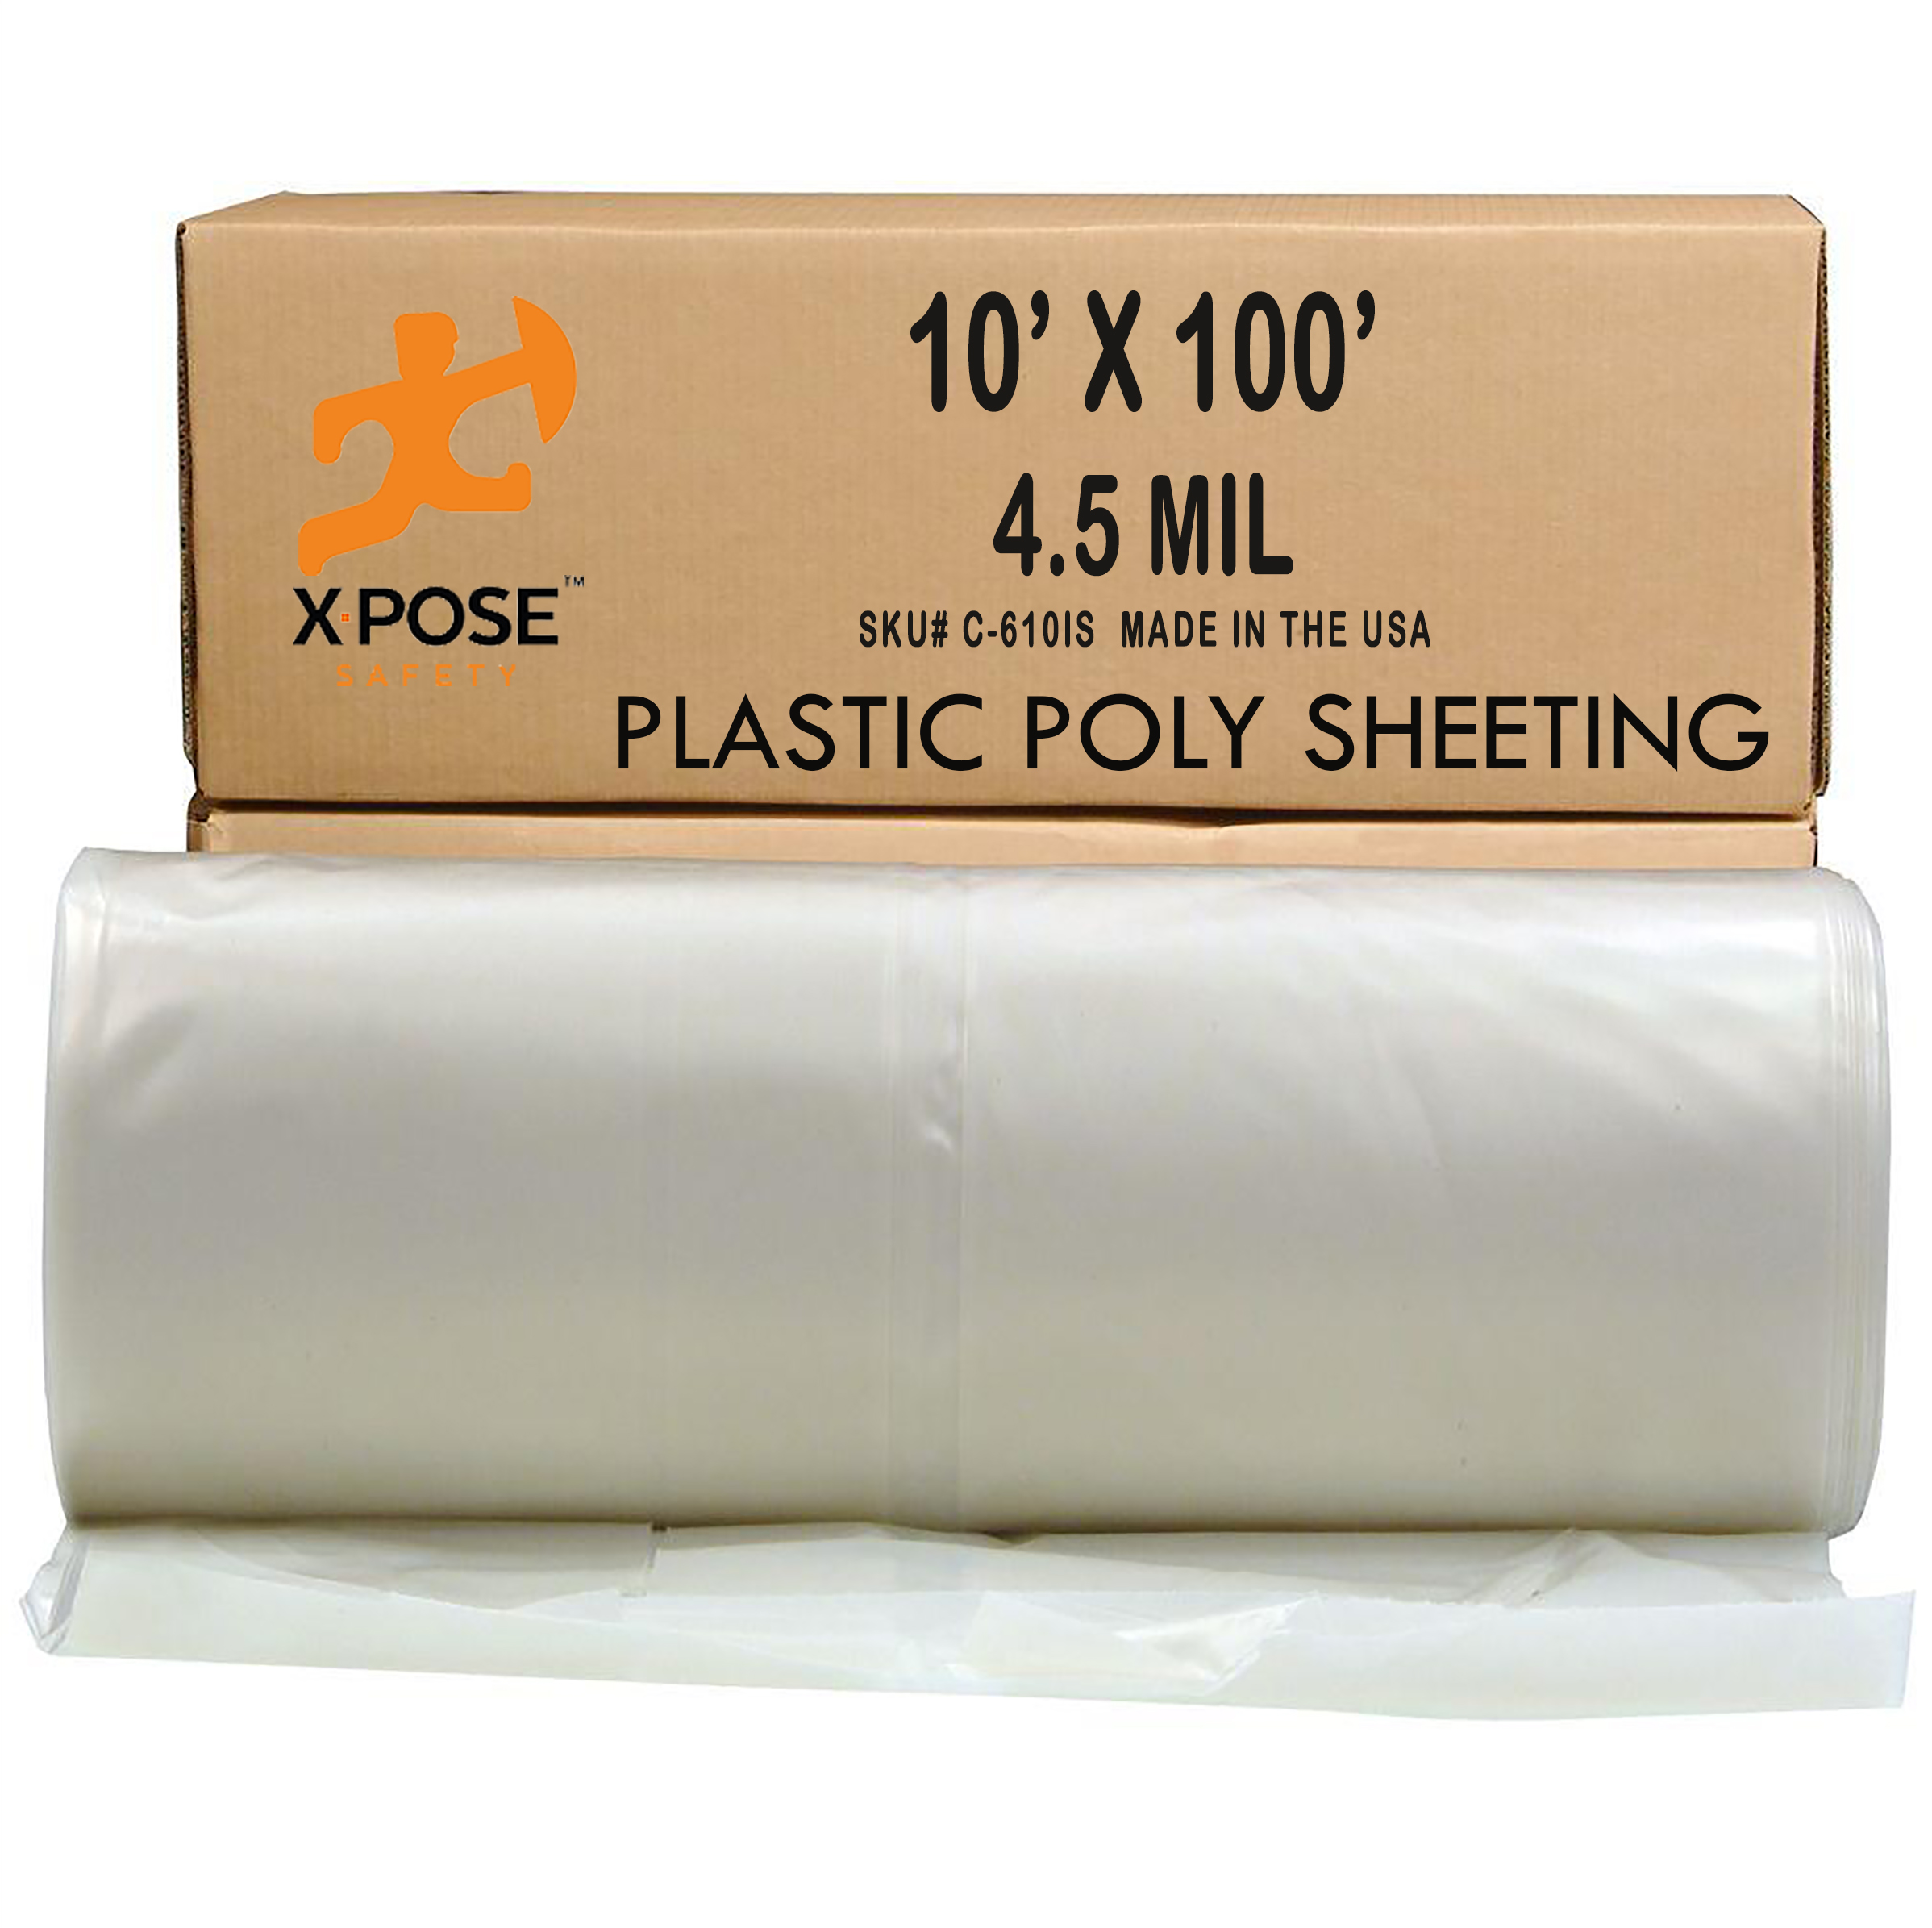 Plastic Poly Sheeting 10' x 100', 4.5 mil C-610IS